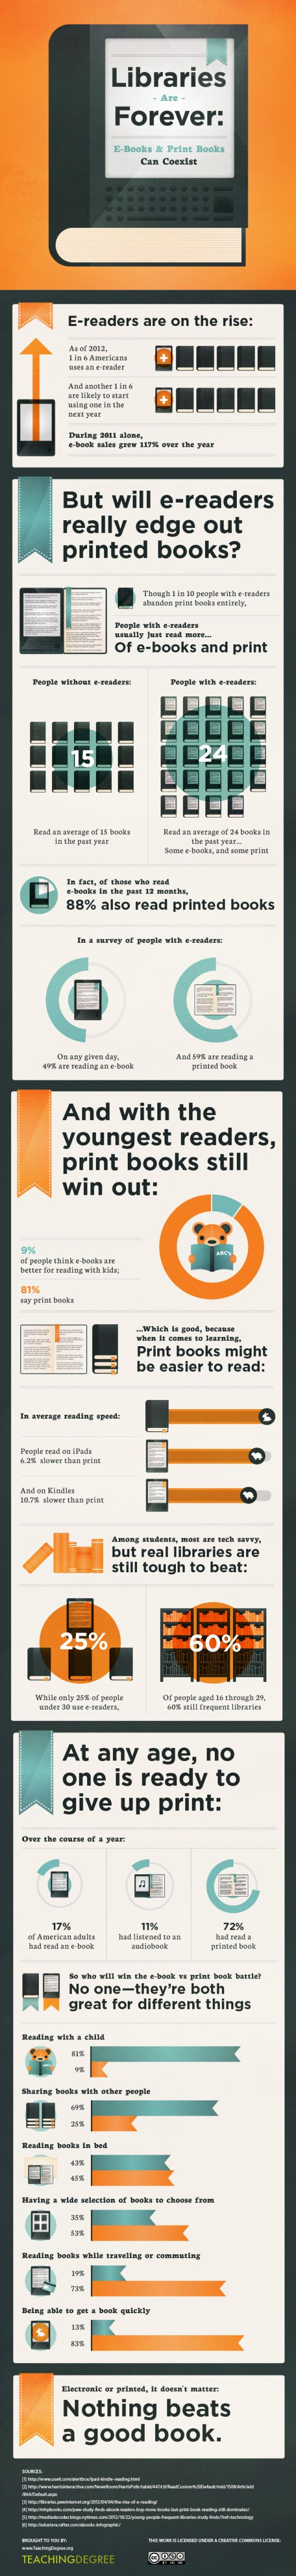 Libraries Matter: 18 Fantastic Librarygraphics E Booksgood